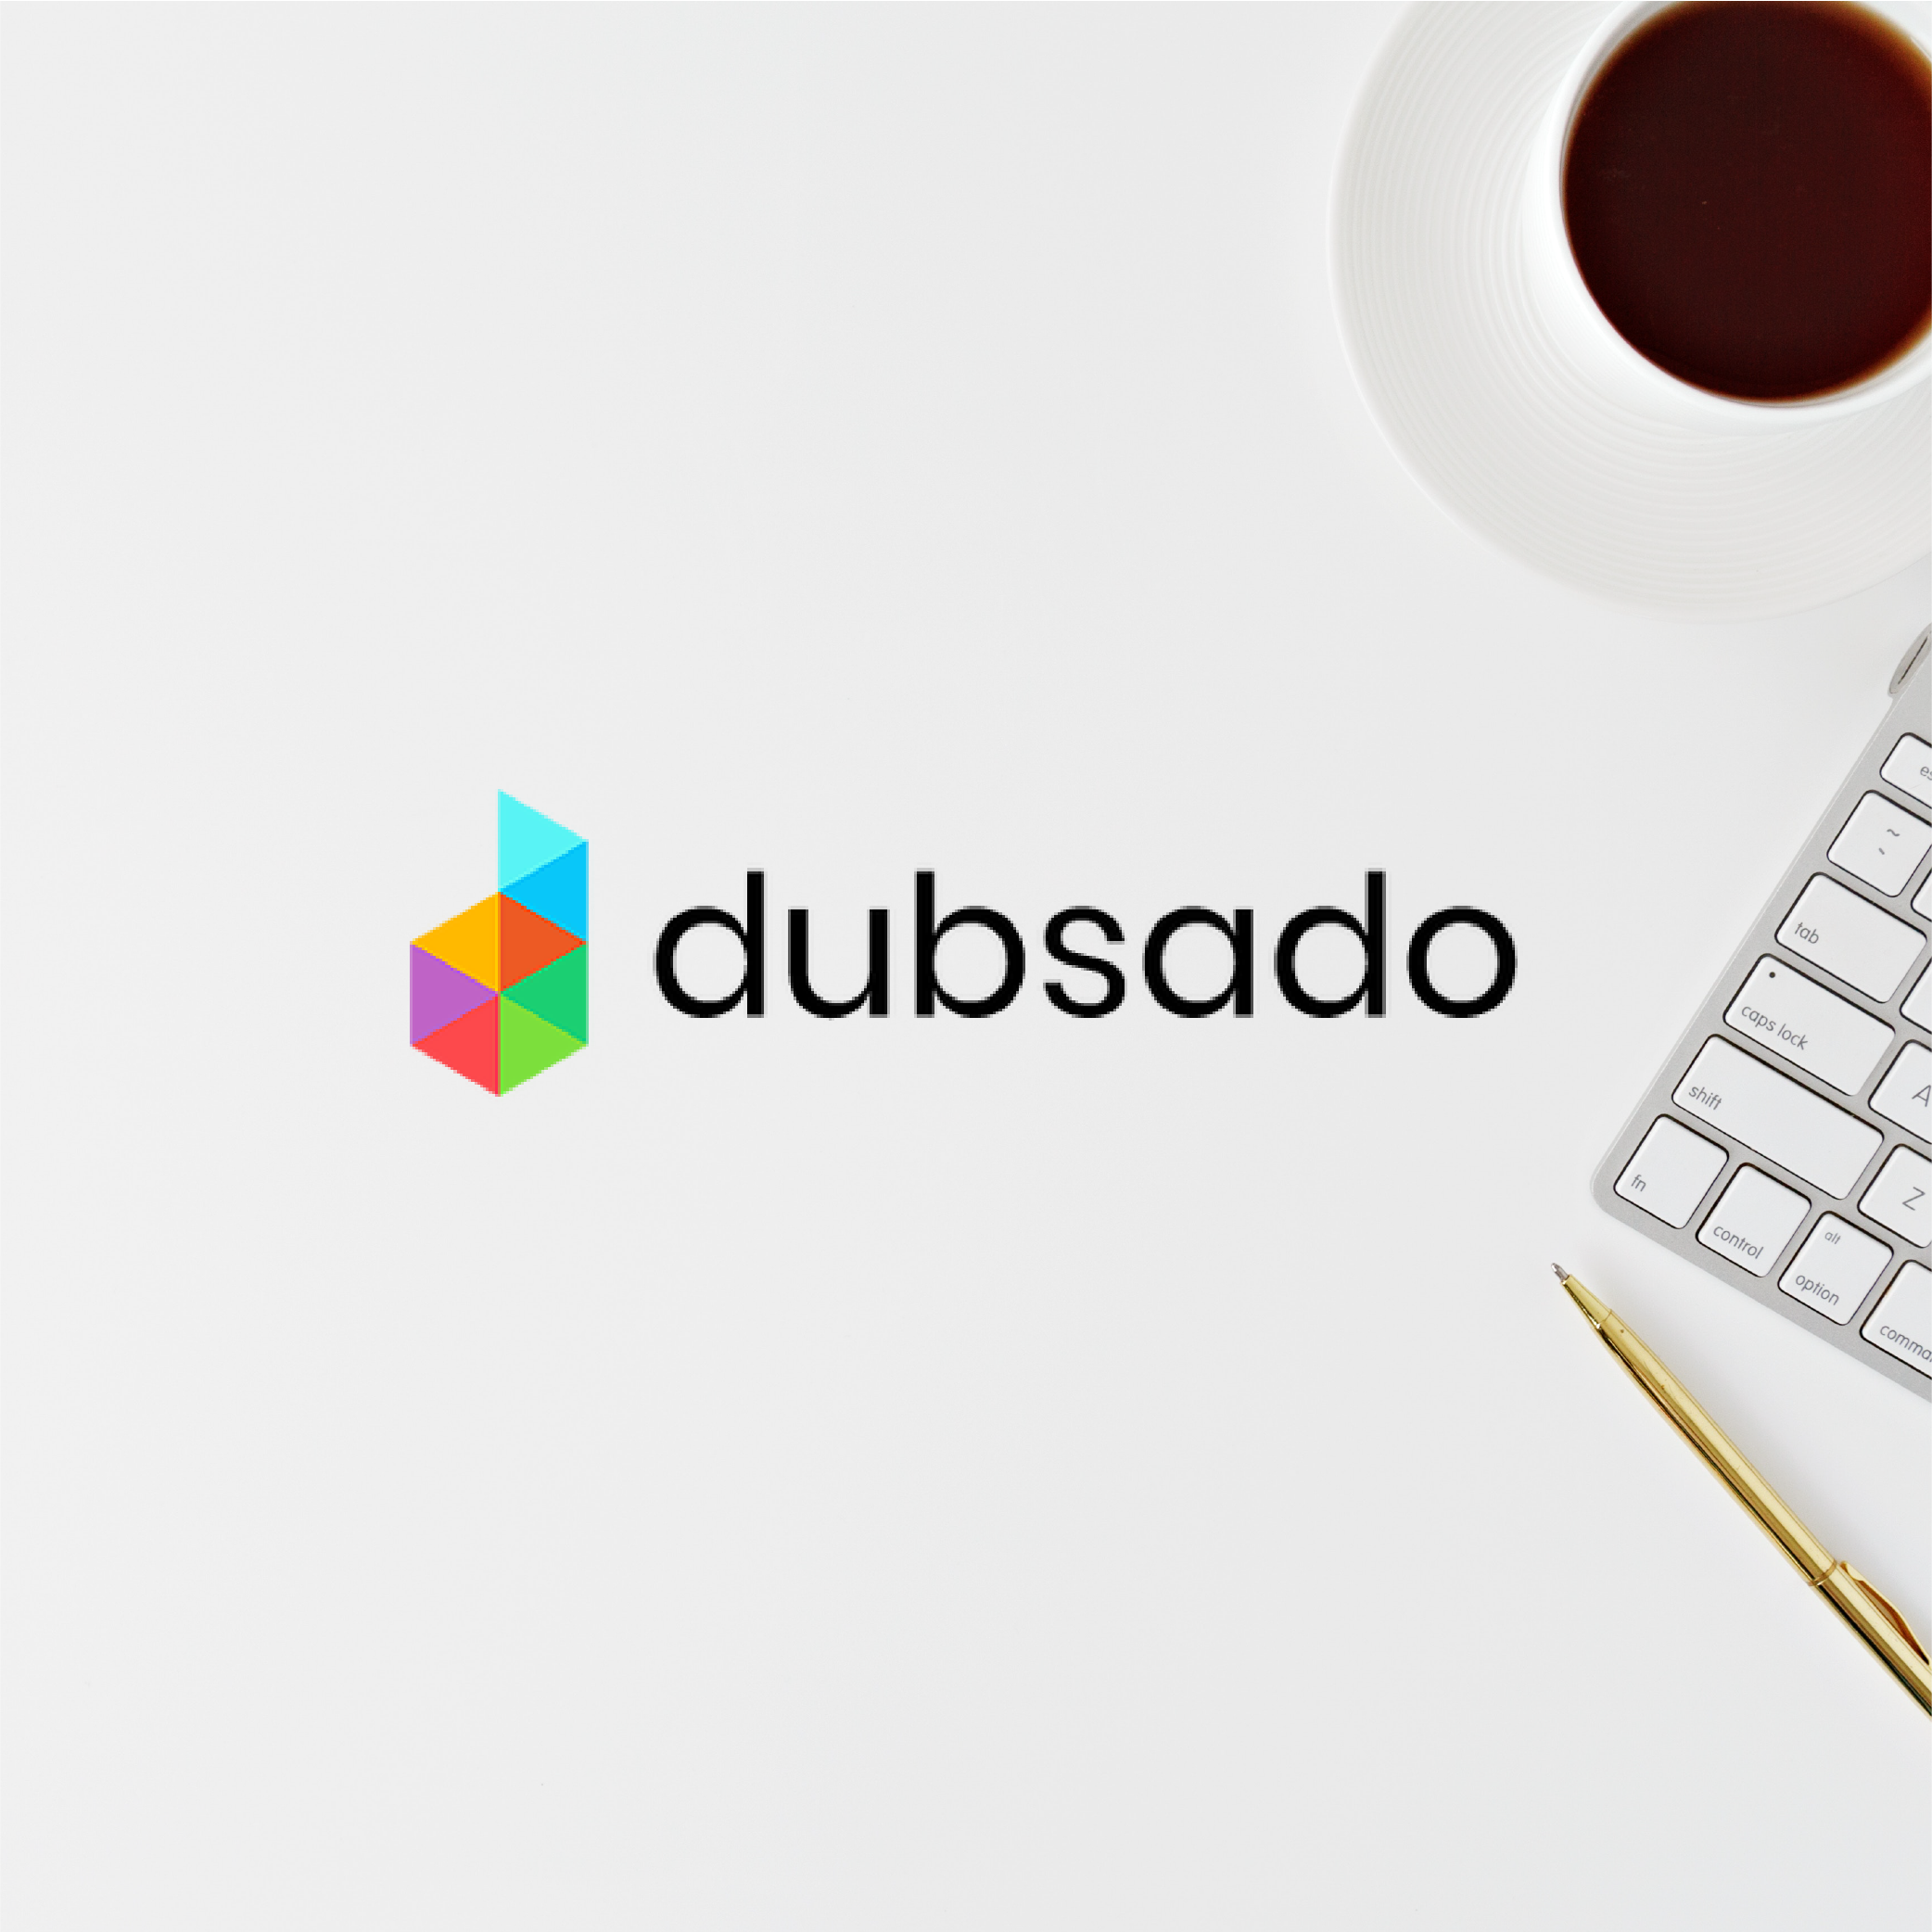 Dubsado affiliate link photo with keyboard and coffee cup